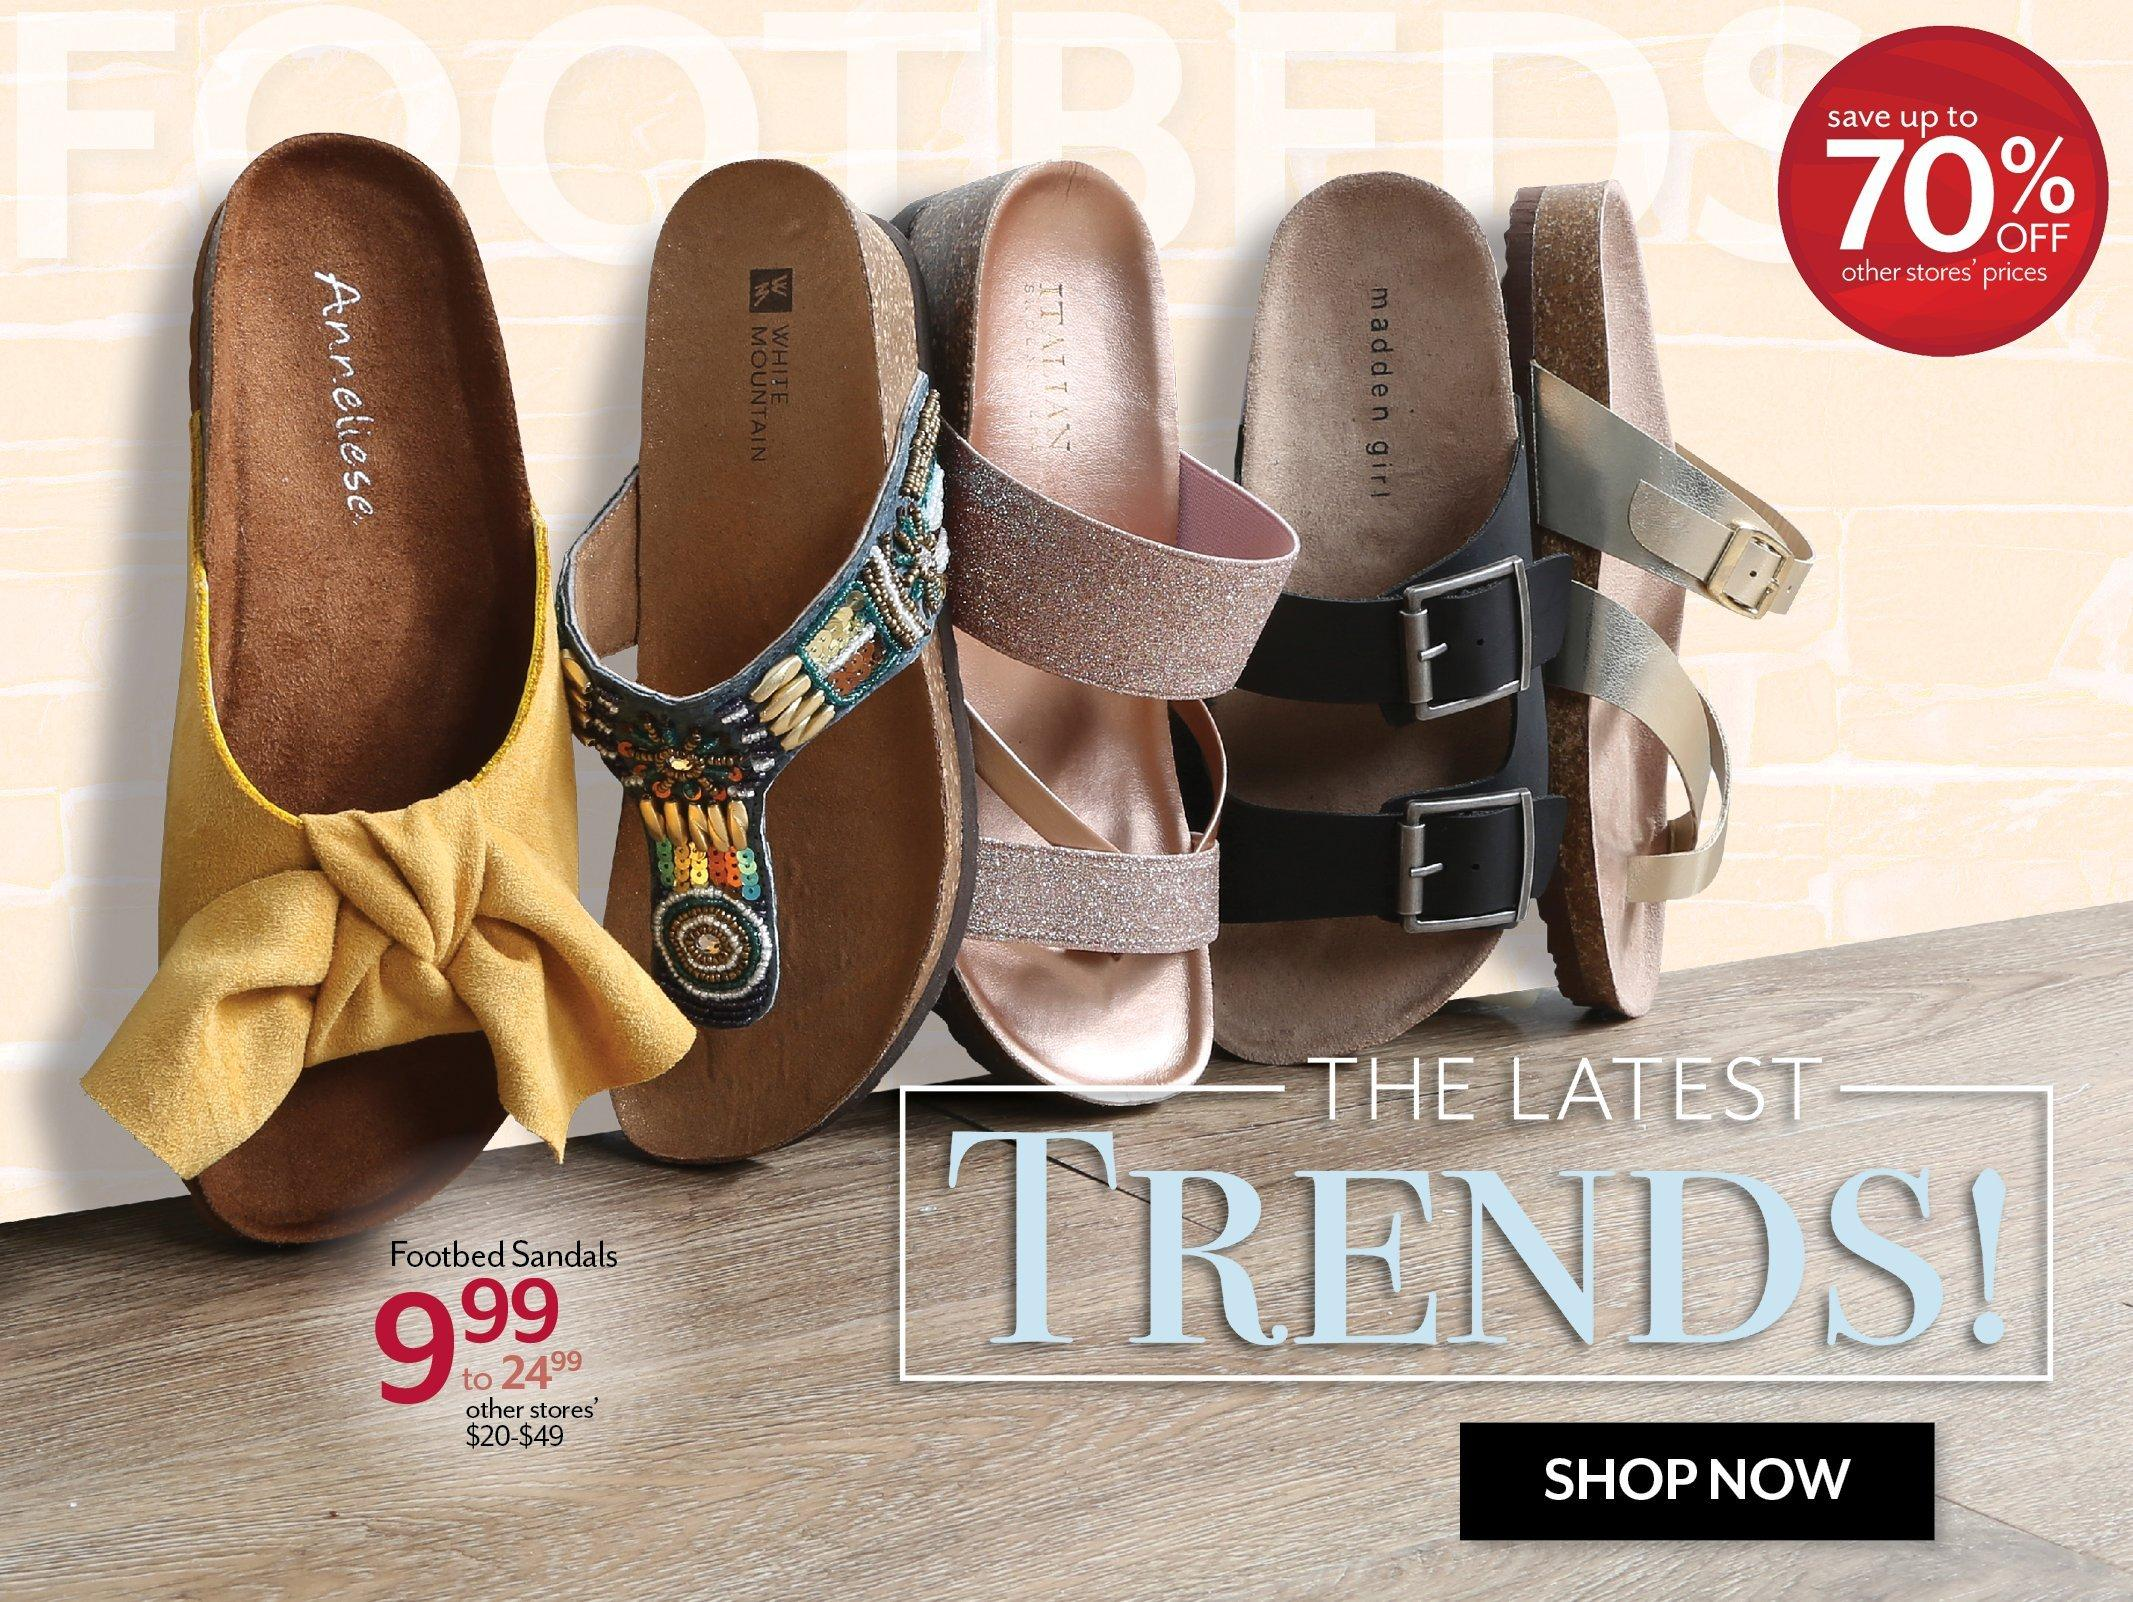 Shop the latest in Shoes at Burkes Outlet